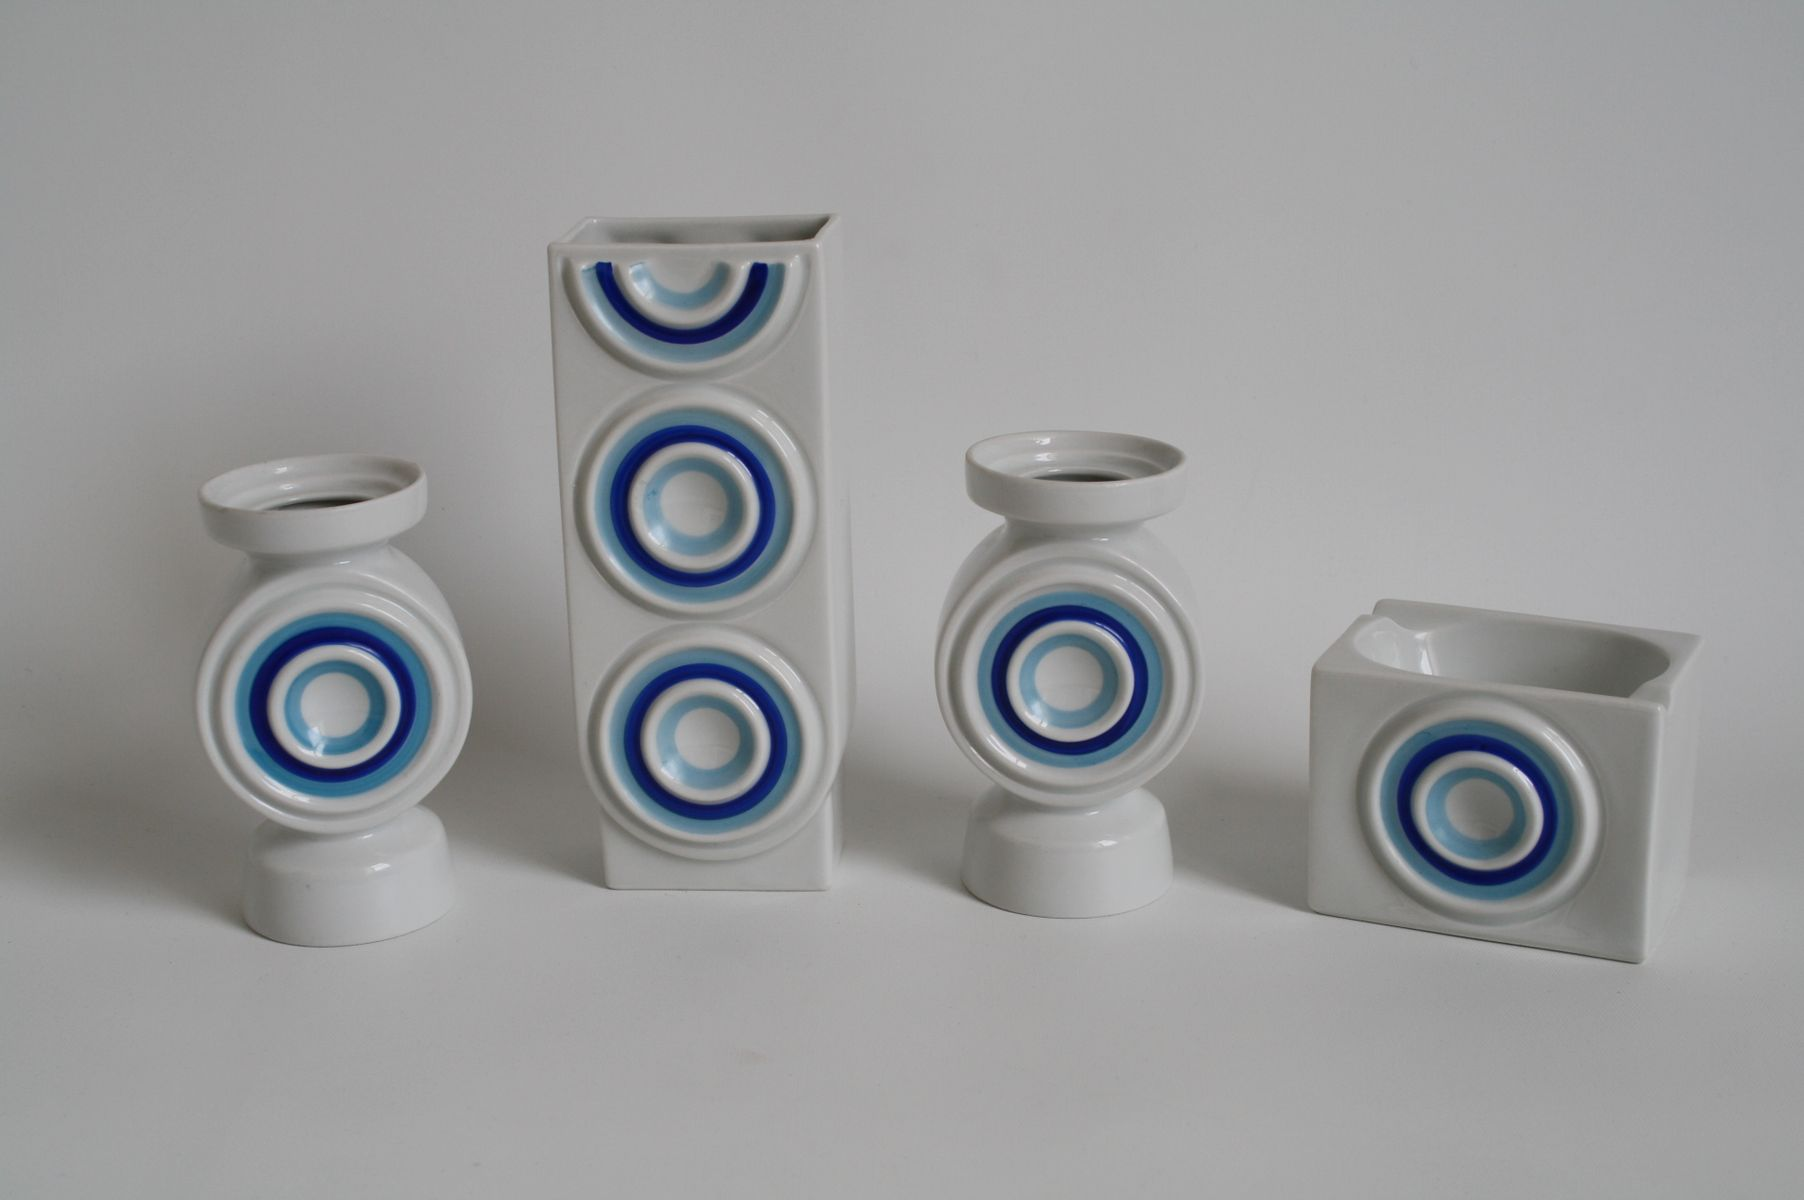 op art german porcelain vases and ashtray from plankenhammer 1960s set of 4 for sale at pamono. Black Bedroom Furniture Sets. Home Design Ideas